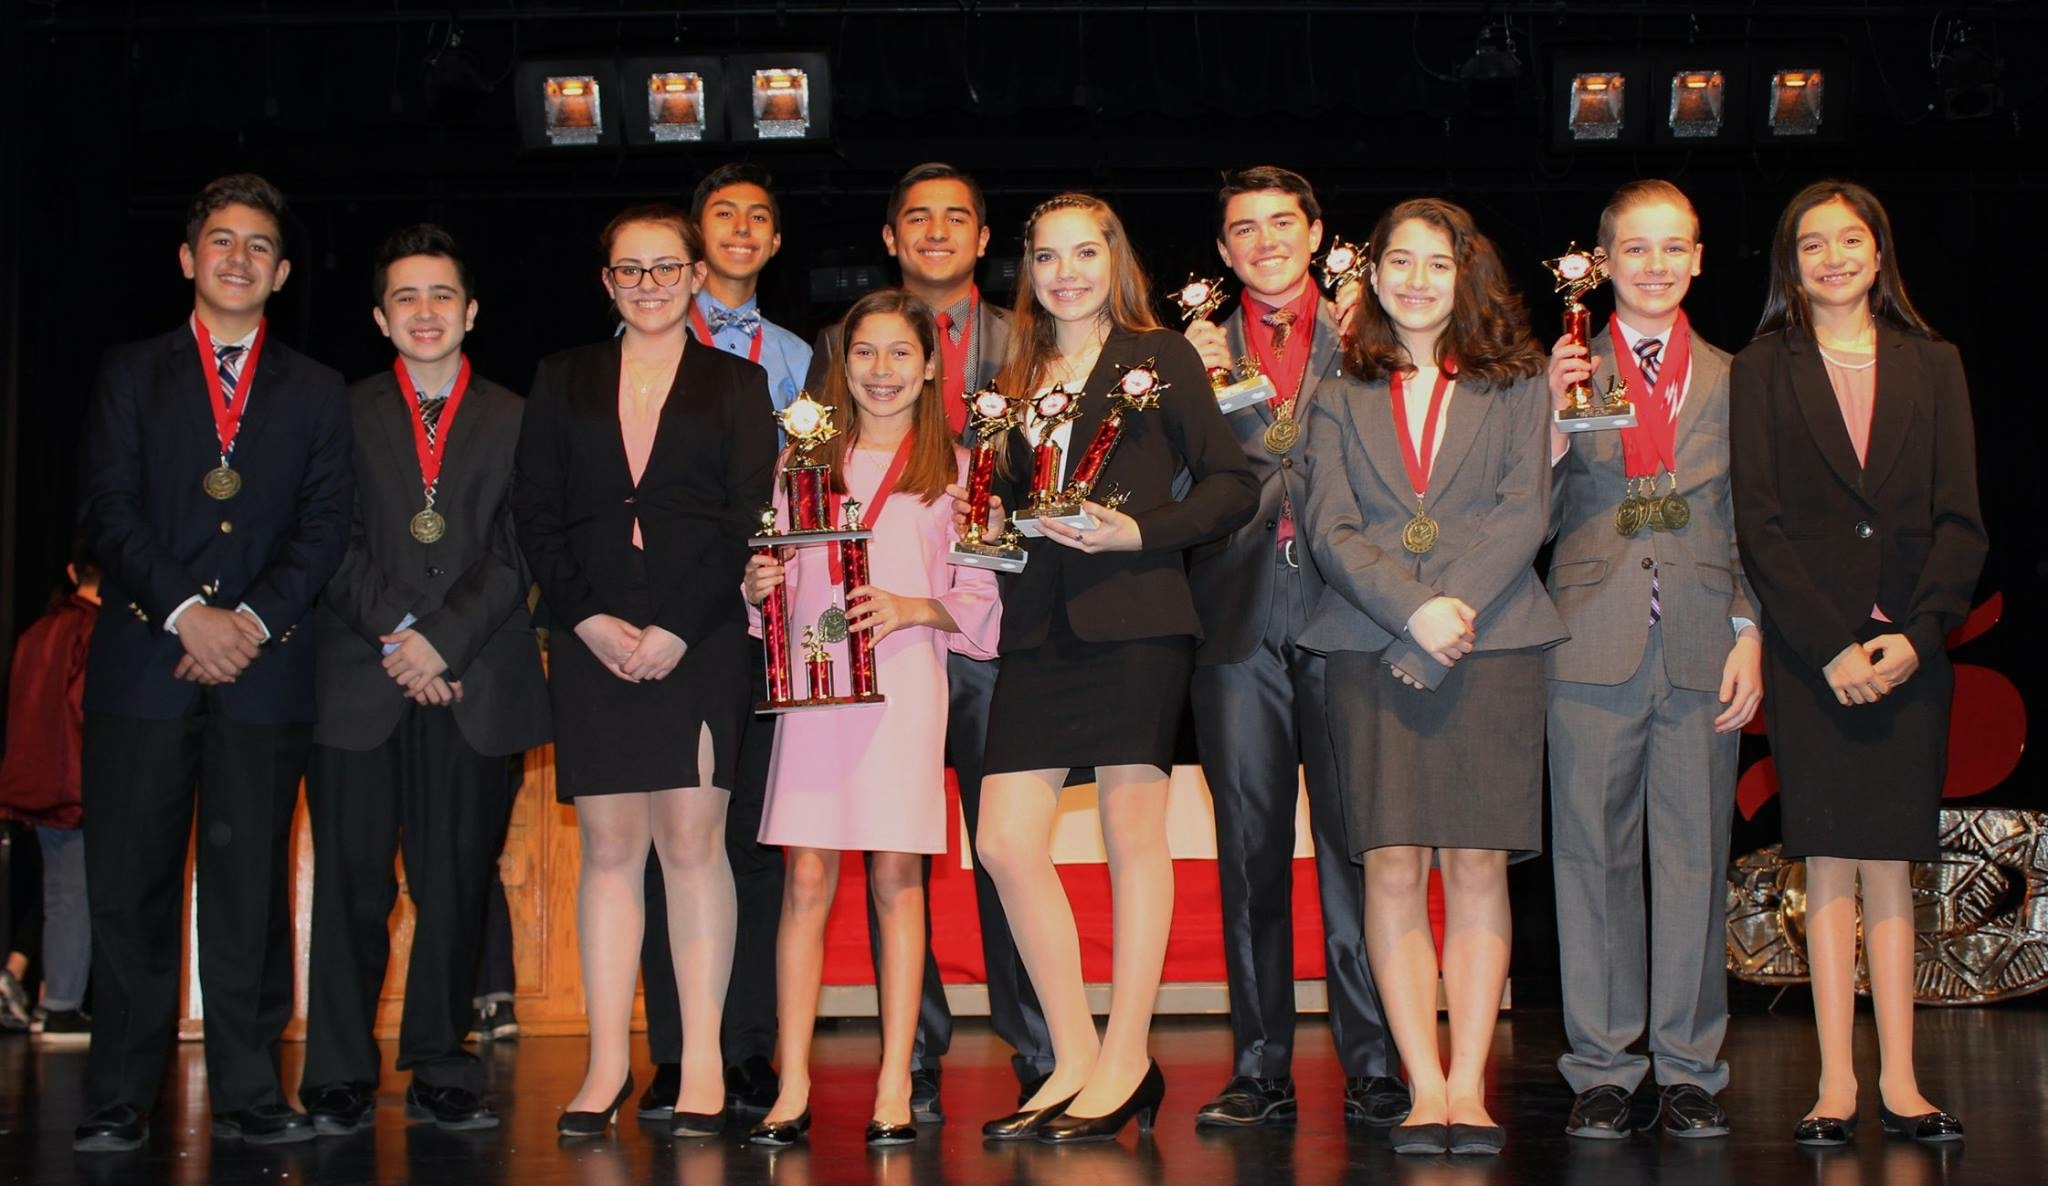 Vela takes third place sweeps in high-school speech contest